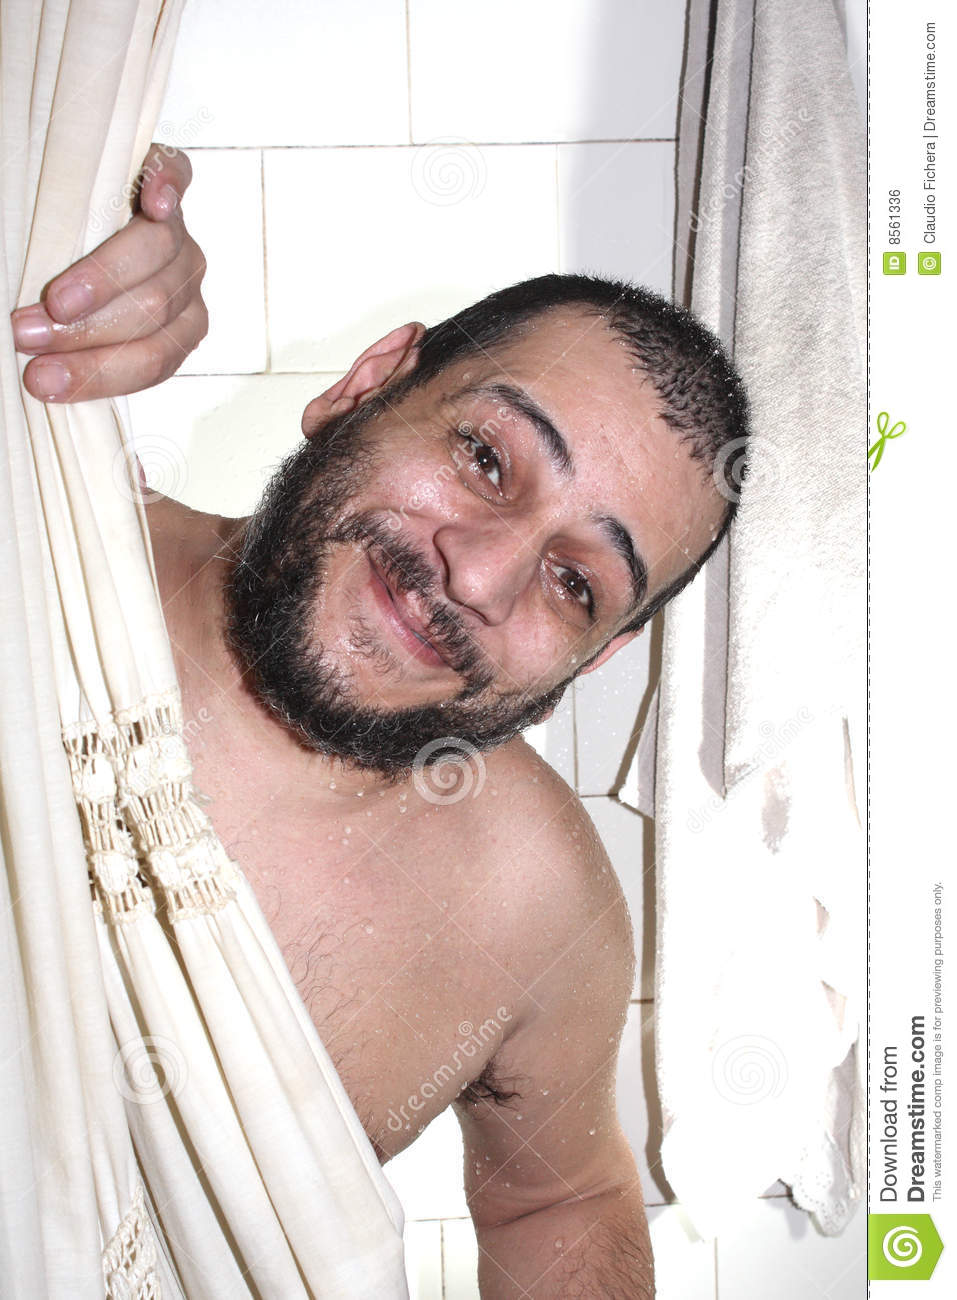 Fat Man With A Beard In The Shower Royalty Free Stock